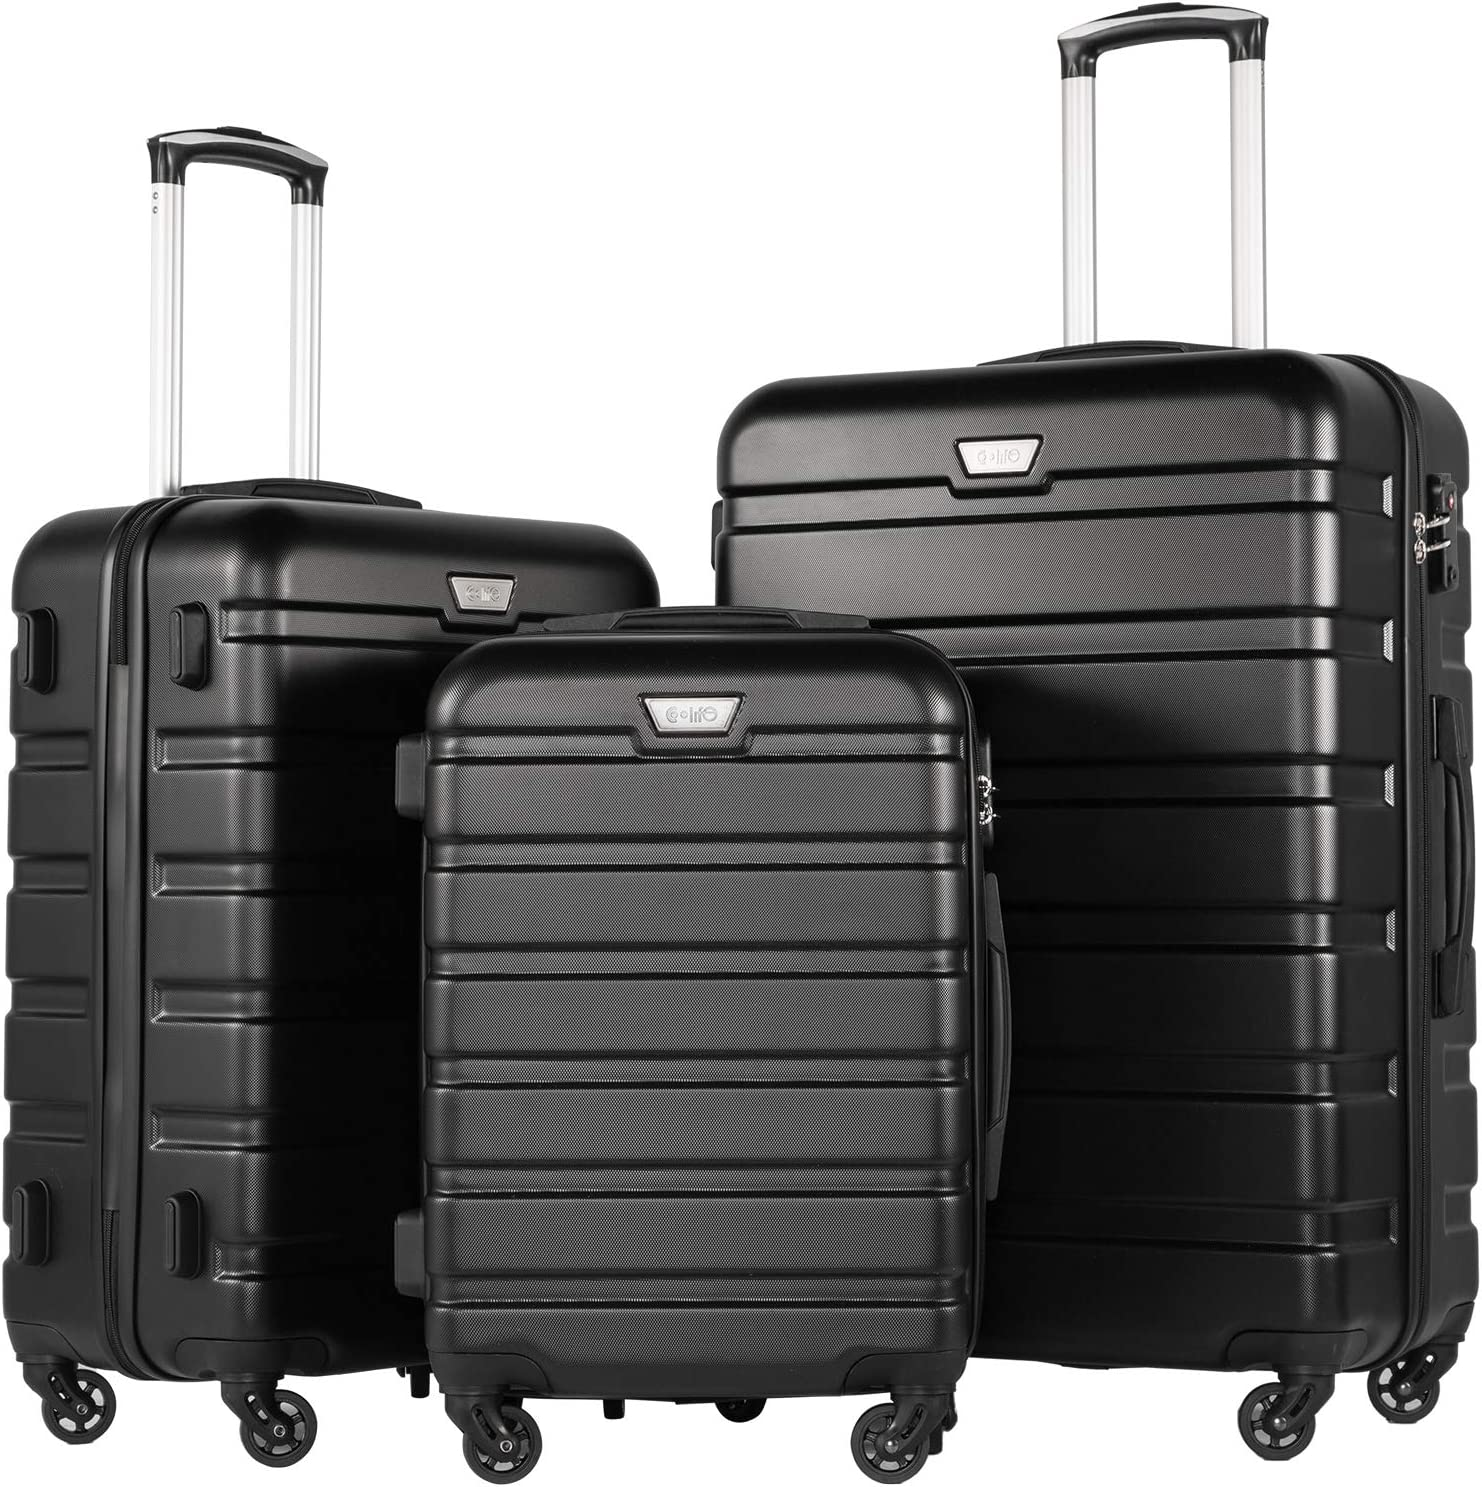 COOLIFE Suitcase Trolley Carry On Hand Cabin Luggage Hard Shell Travel Bag Lightweight 2 Year Warranty Durable 4 Spinner Wheels (Black, 3 Pcs Set)